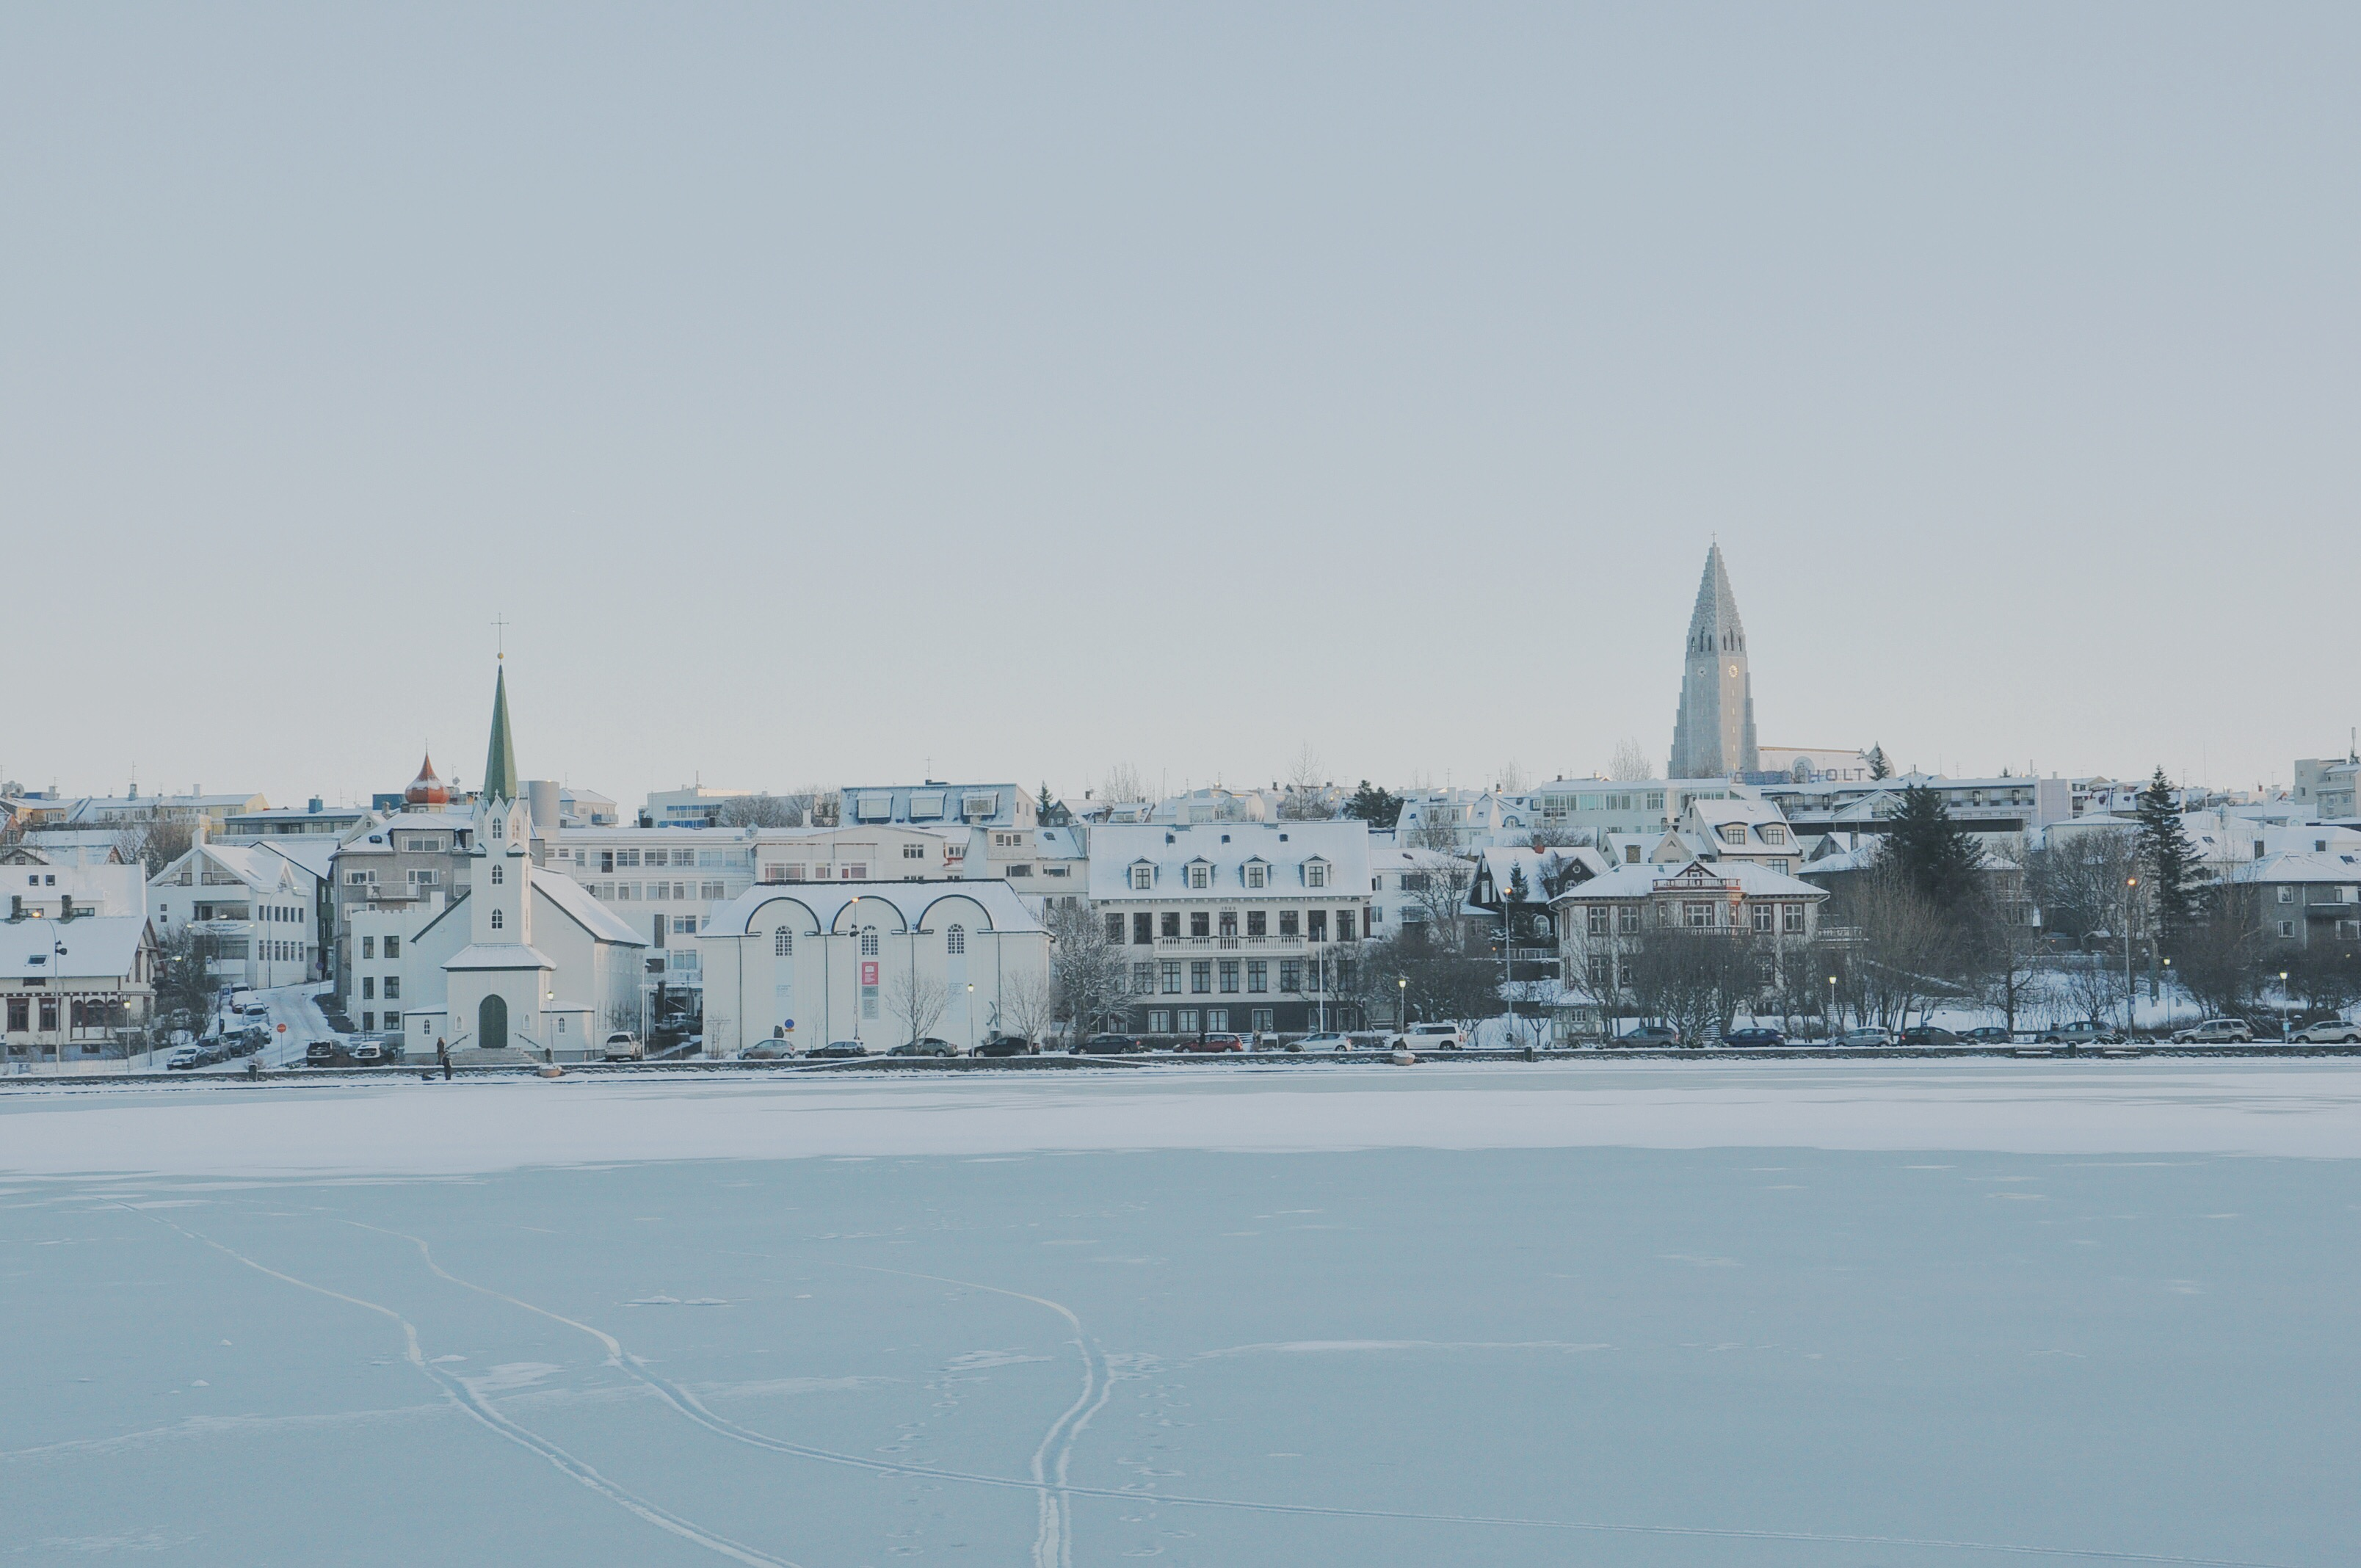 The skyline of Reykjavík when clad in its winter coat.